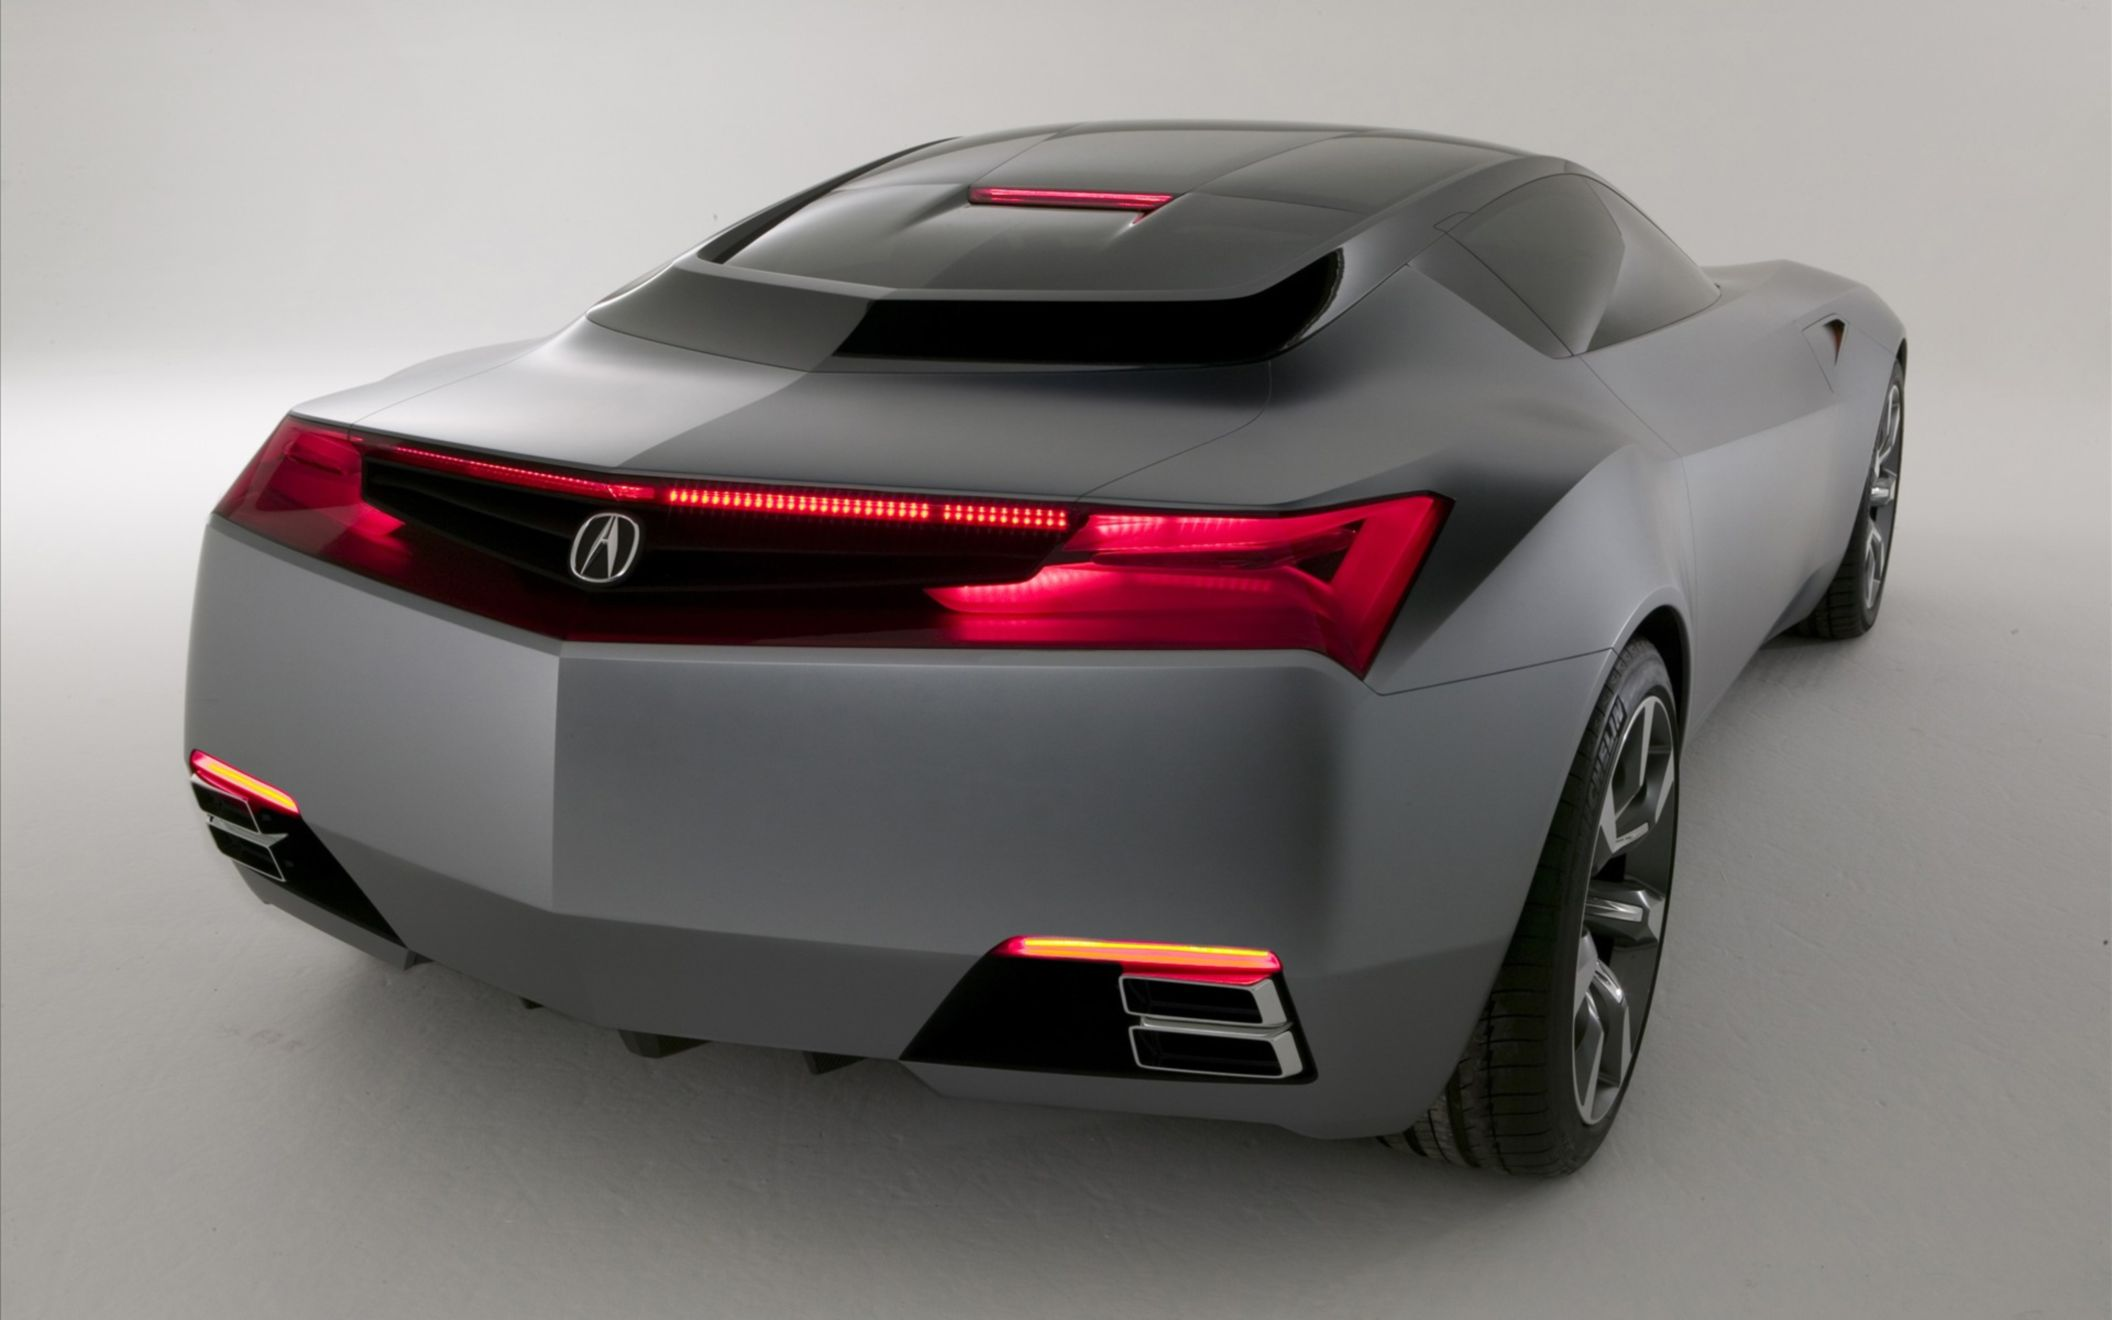 Download free HD Acura Concept Car Wide Wallpaper, image